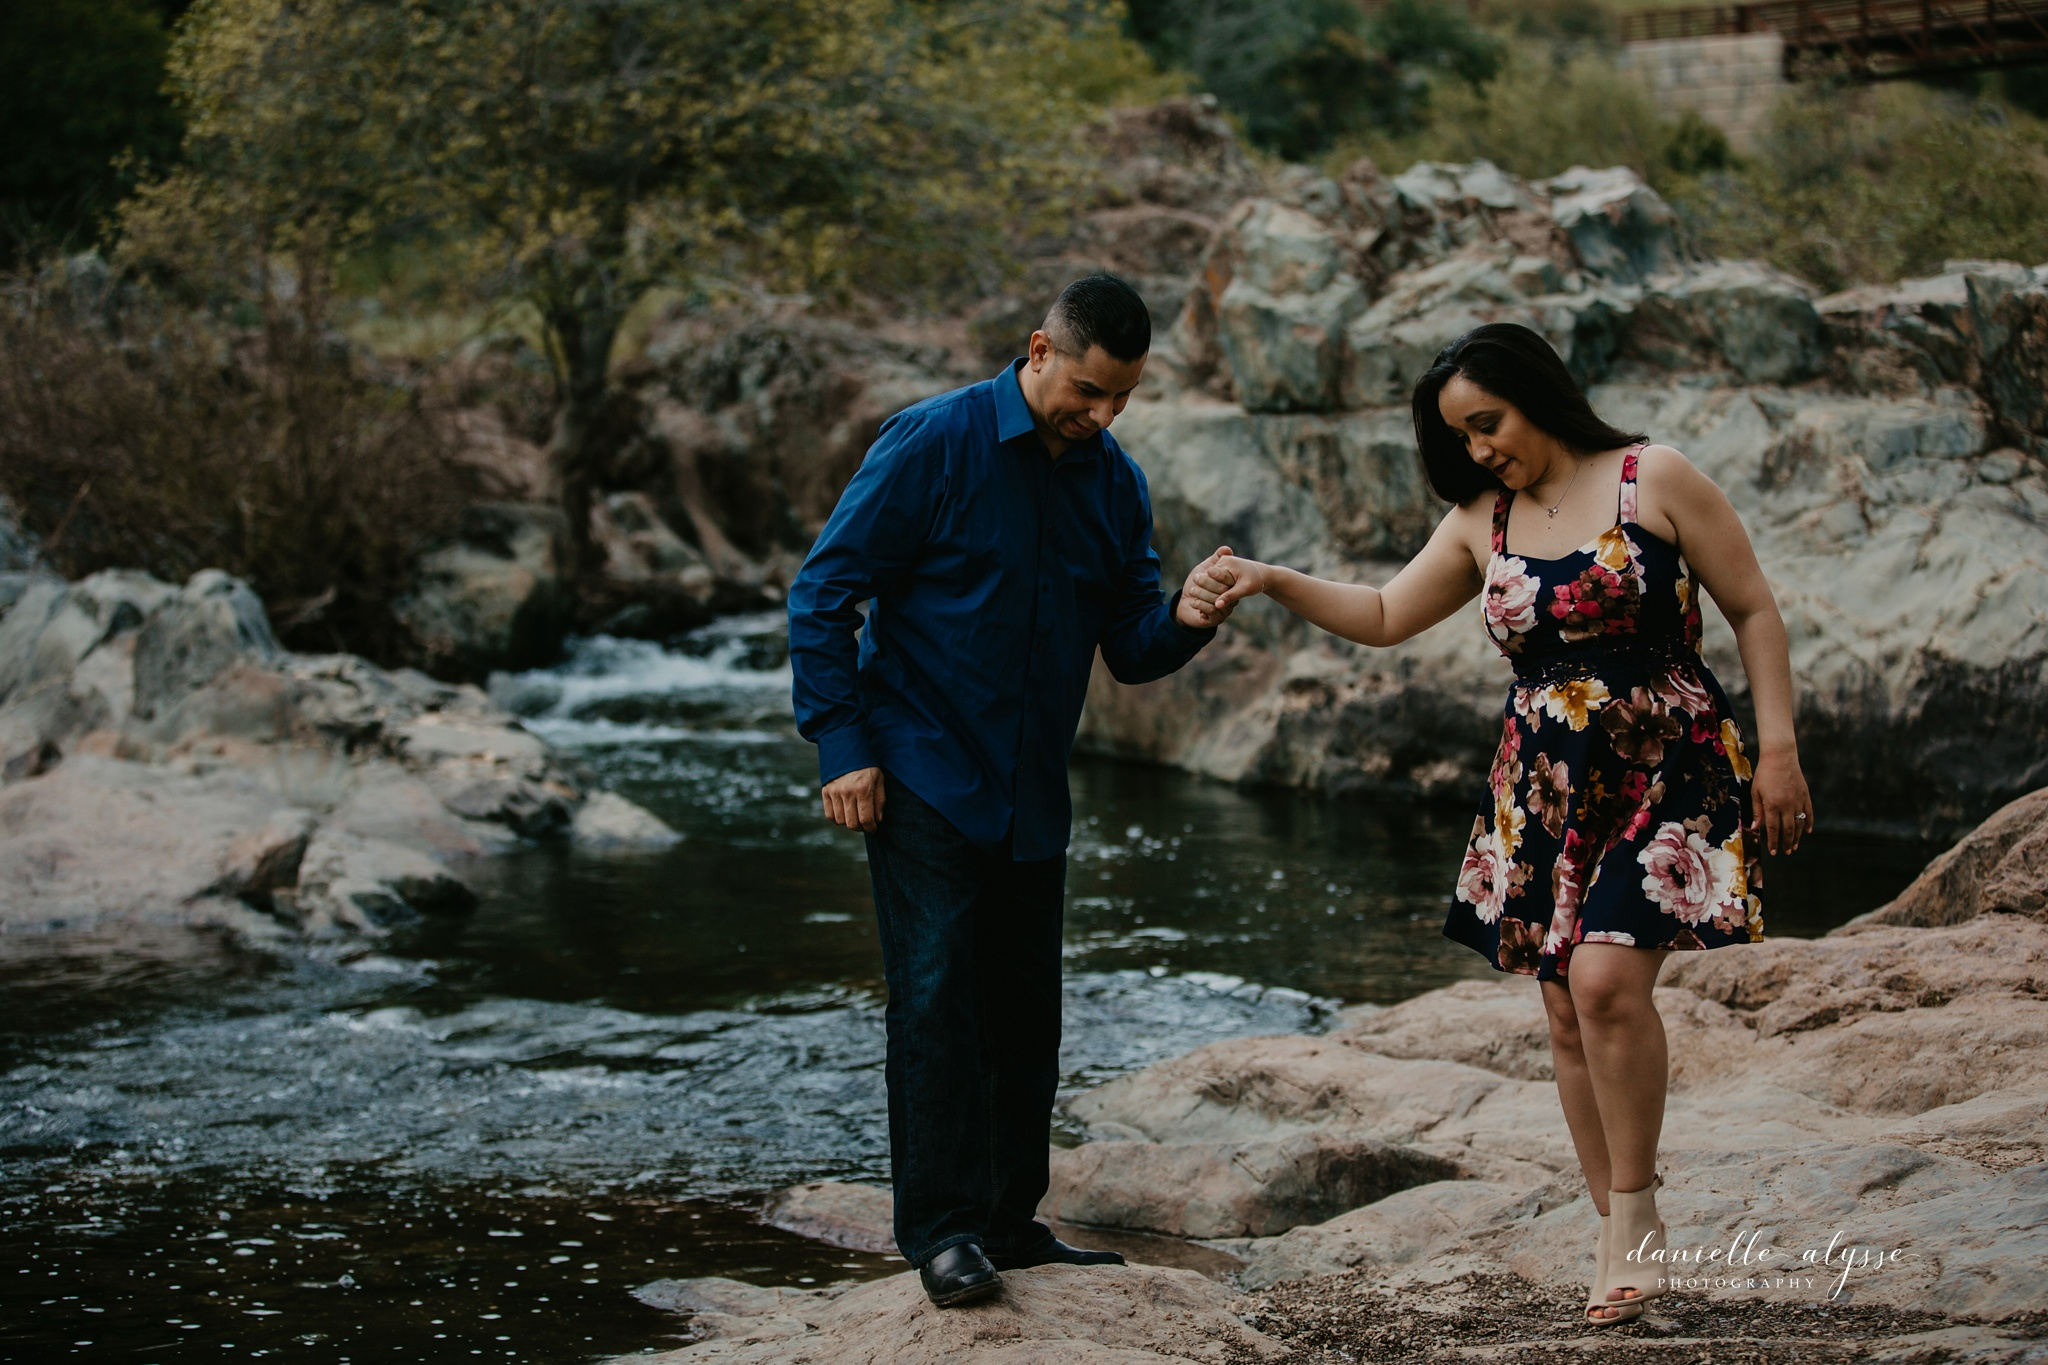 180425_engagement_monica_auburn_water_falls_auburn_danielle_alysse_photography_sacramento_photographer_blog_56_WEB.jpg